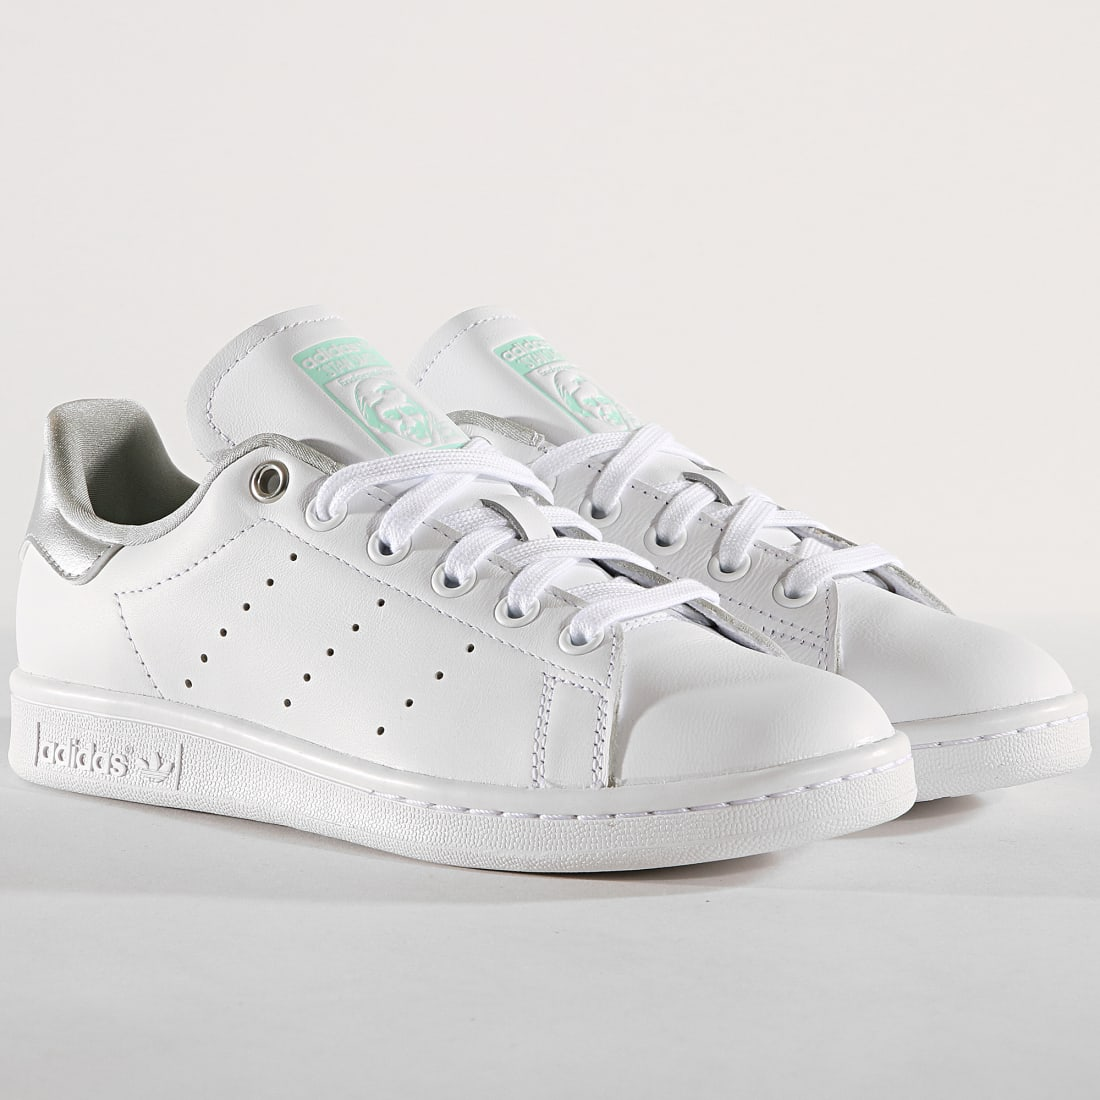 adidas Baskets Femme Stan Smith G27907 Footwear White